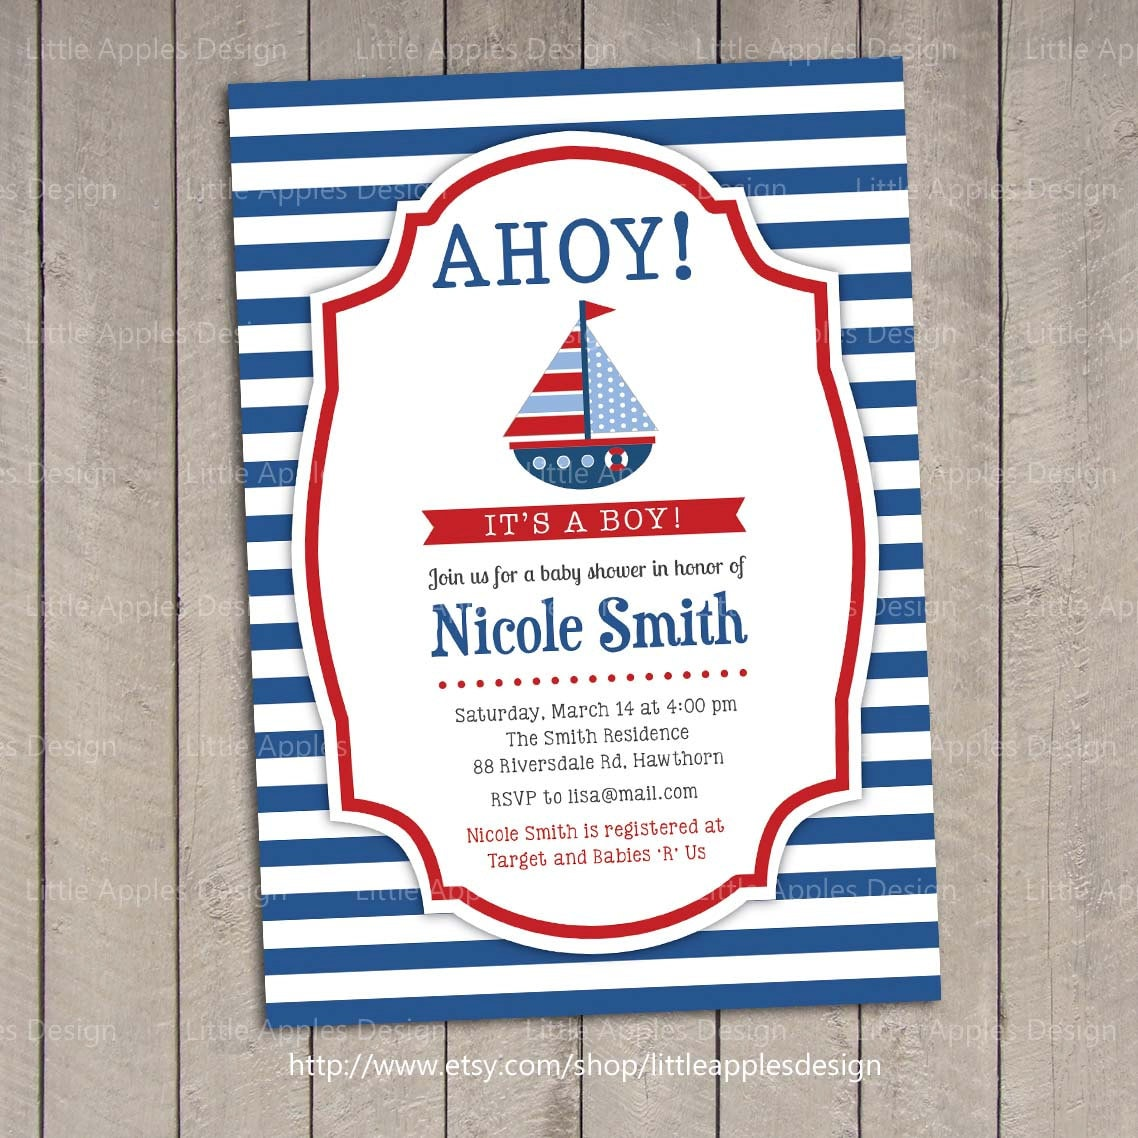 trends viral wallpaper baby nautical invitations create new shower free